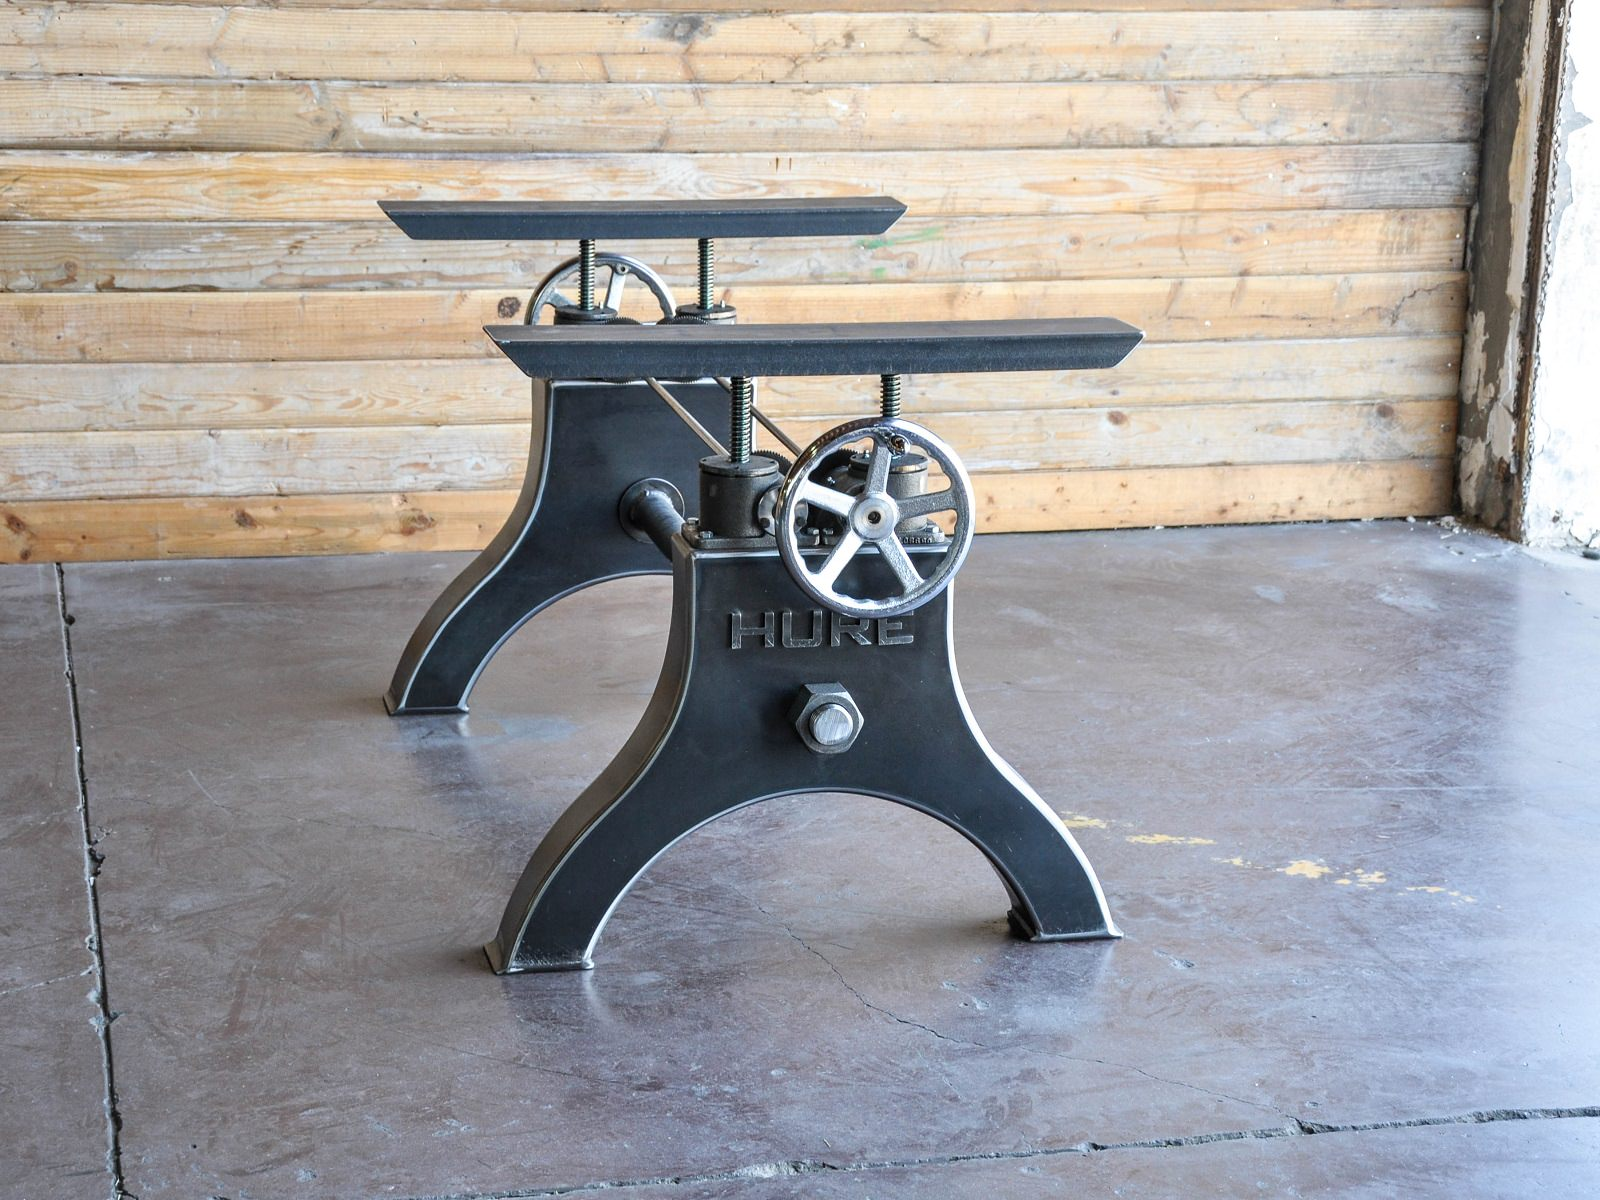 hure crank table base vintage industrial furniture. Black Bedroom Furniture Sets. Home Design Ideas